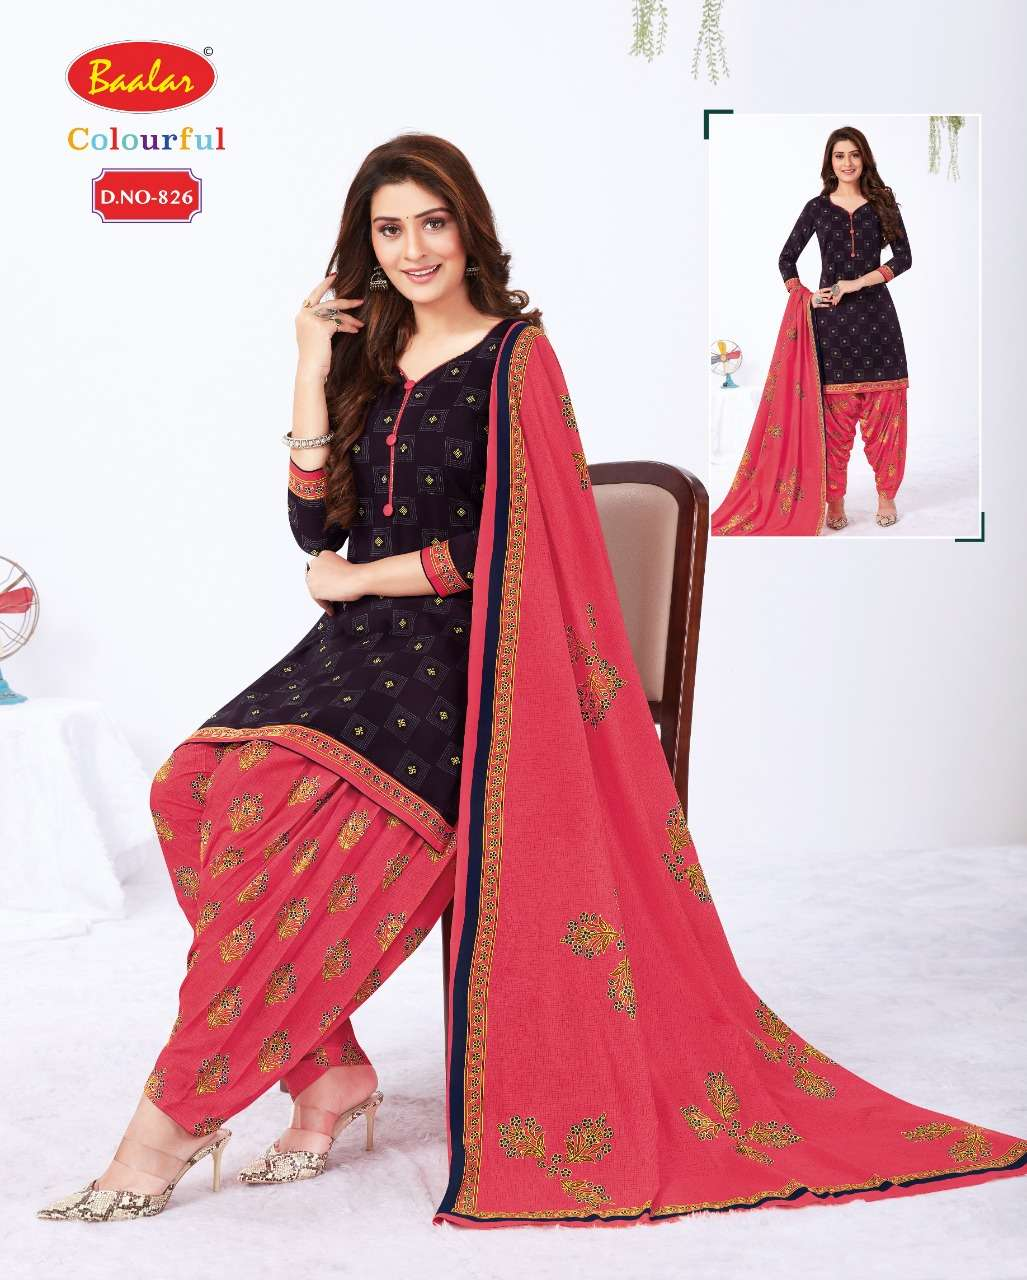 Baalar Colourful Vol 8 Cotton Printed Suits Dealer